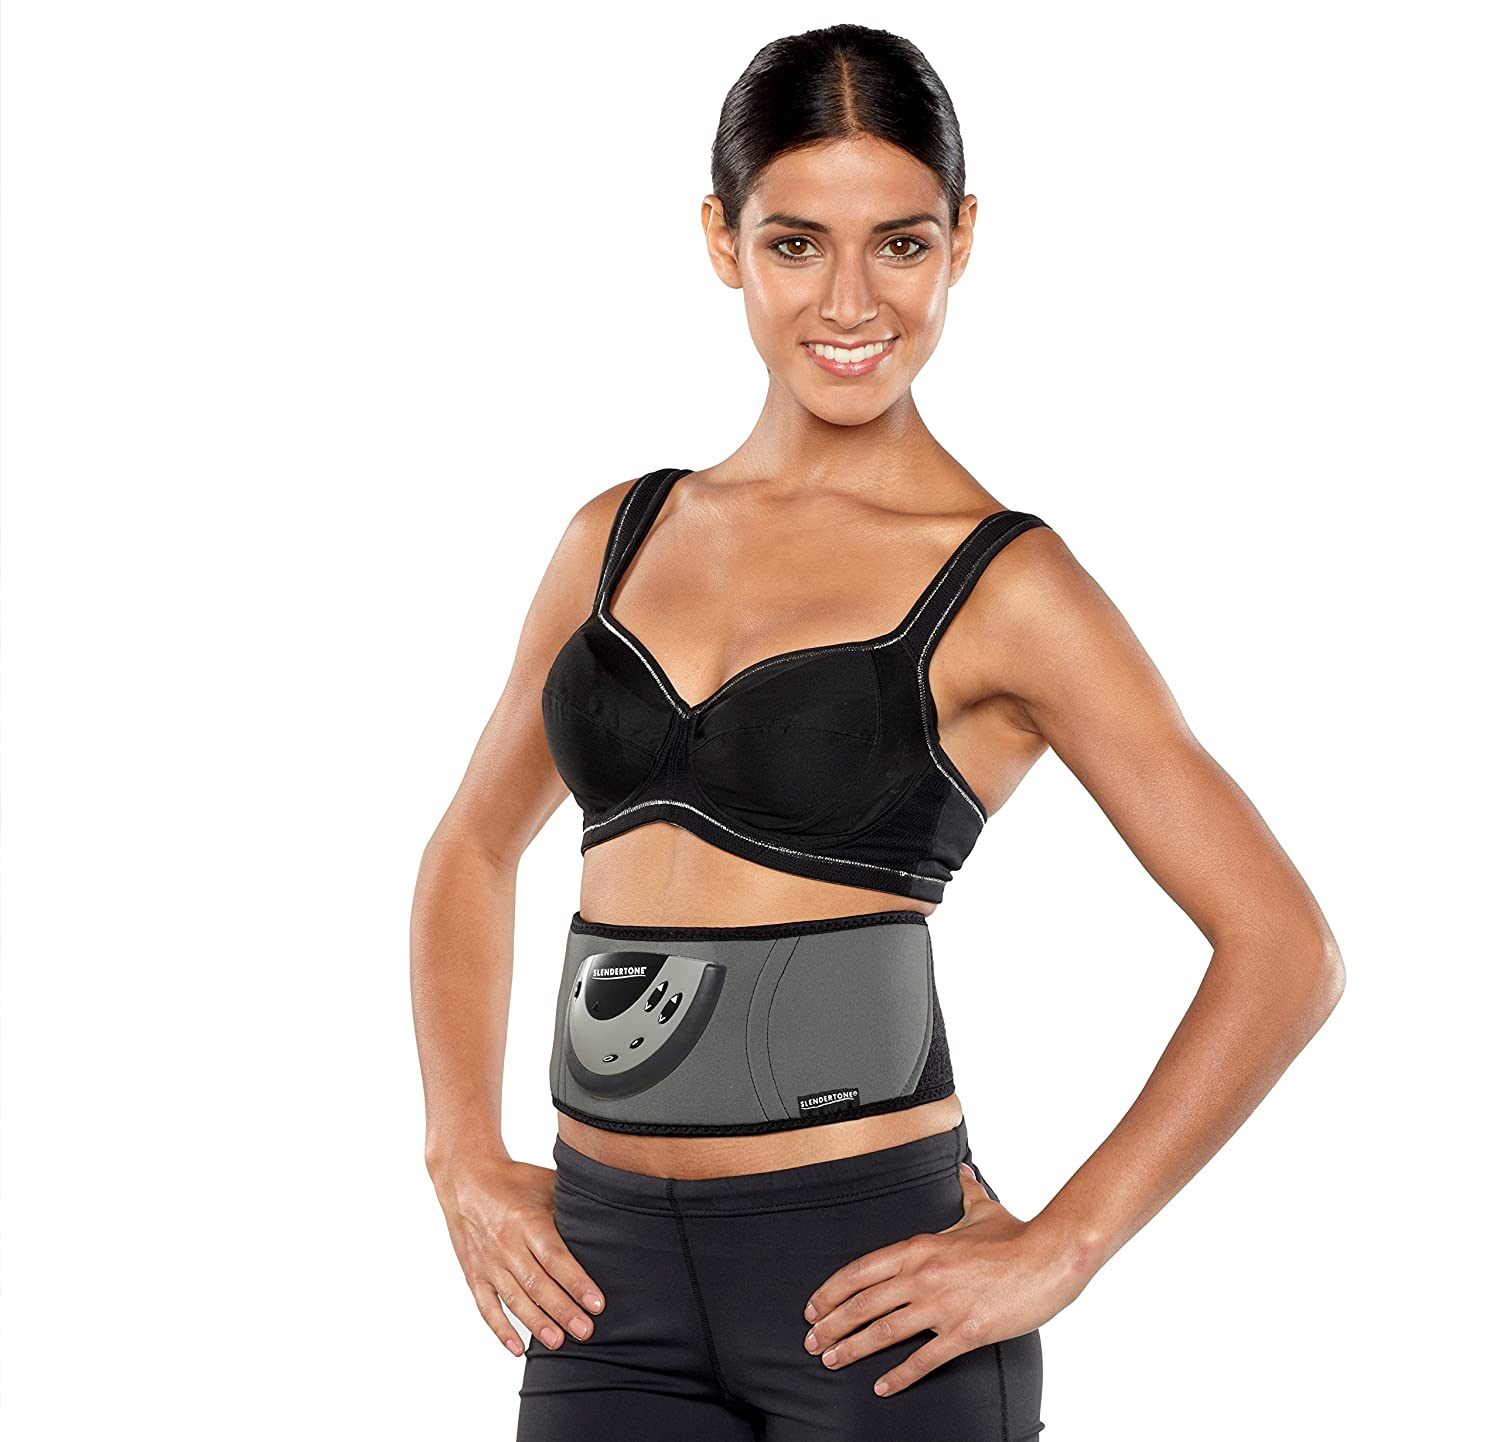 Slendertone Muscle Ab Toning Belts:Buying the Best Abs Workout Tool